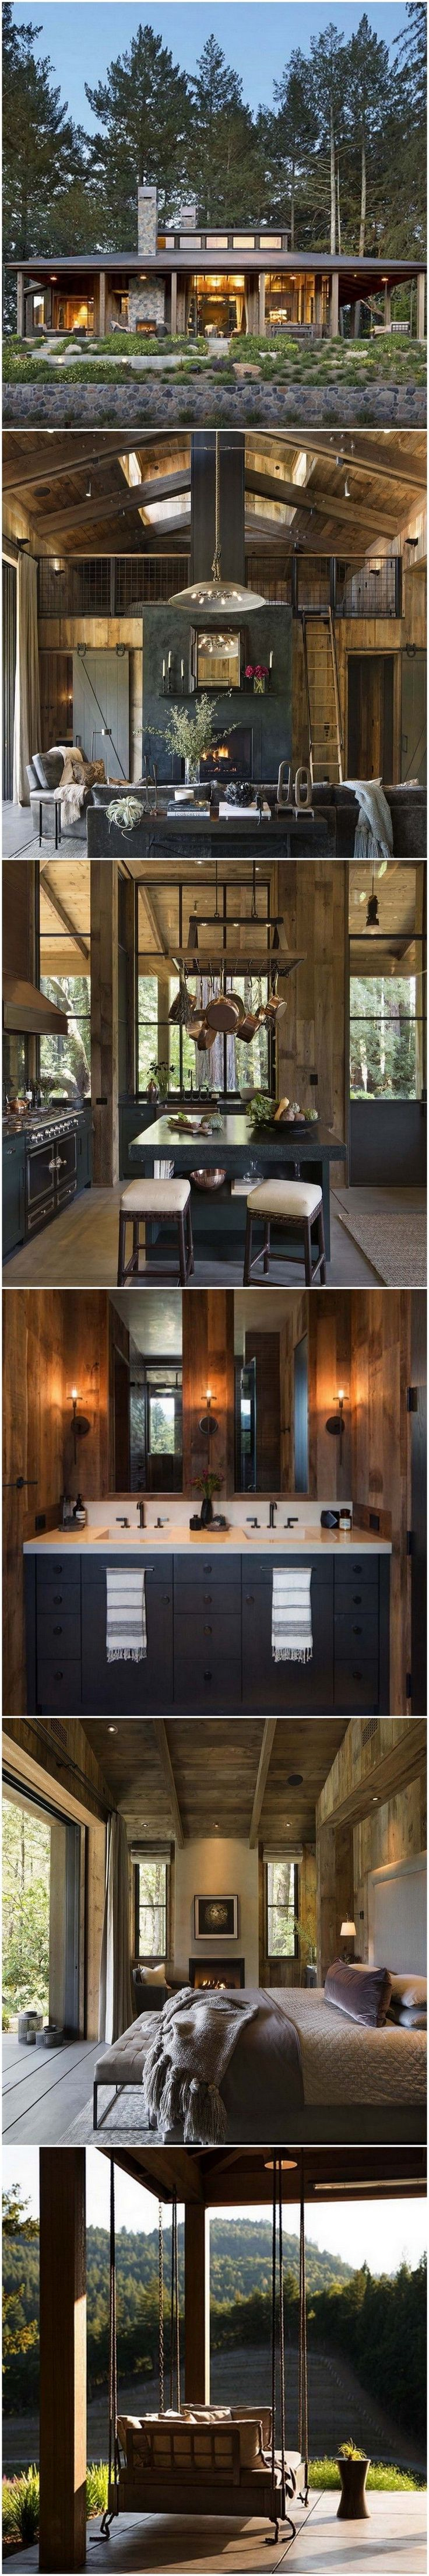 Farmhouse Style Cabin In Napa Valley #interiordesign #designtrends #luxuryfurniture #colortrends  #decoration #homedecor #interiordesigninspiration #interiordesigntips #decoratingideas #livingroomideas #diningroomideas #designtrends #designideas #trendsetters